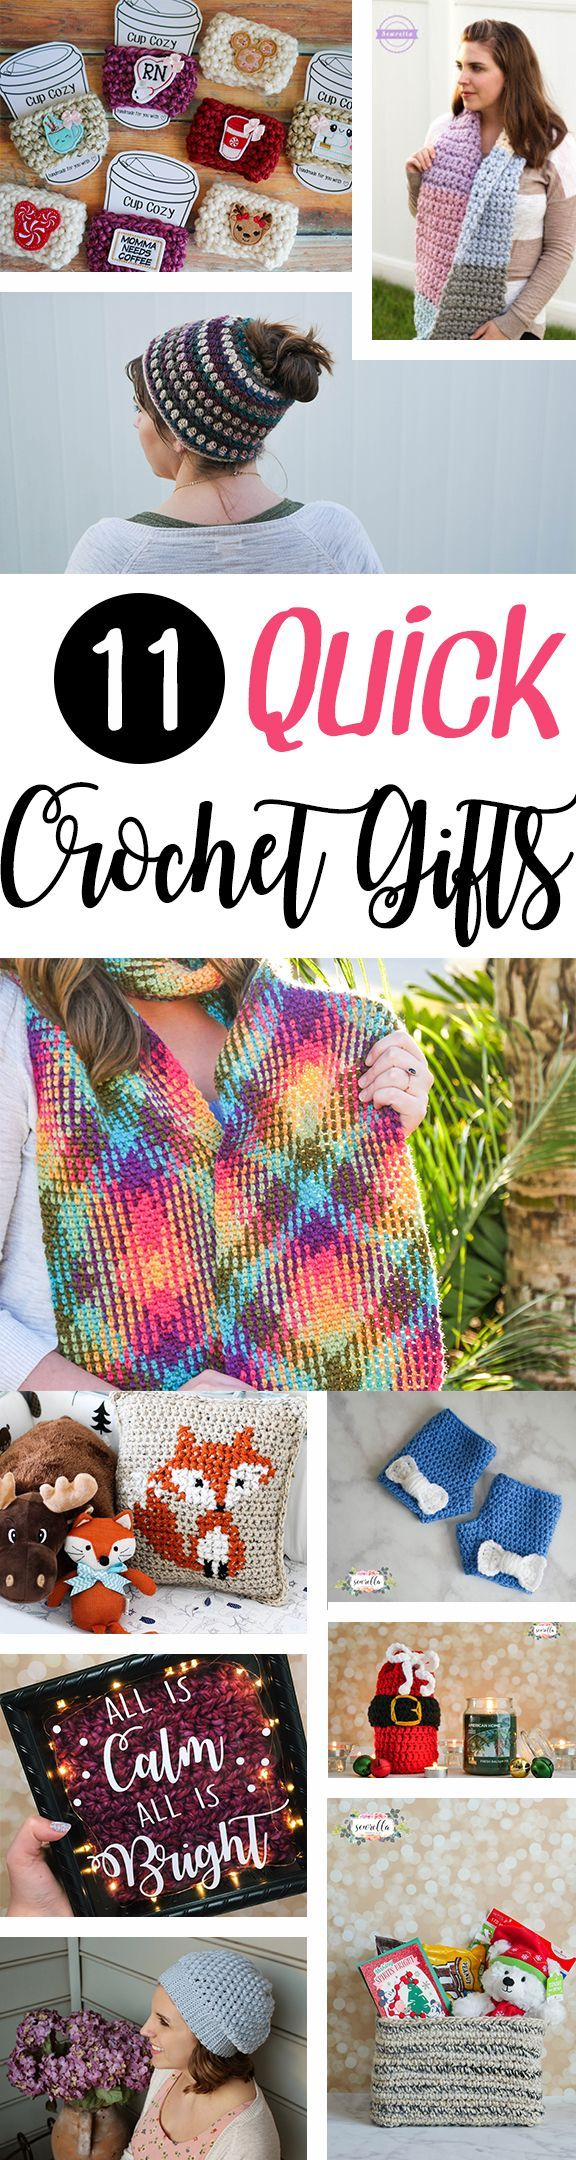 11 Quick Crochet Gift Ideas Roundup for Christmas, holiday, white elephant, birthday, or anniversaries! | ALL free patterns from Sewrella to be whipped up at lightning speed!